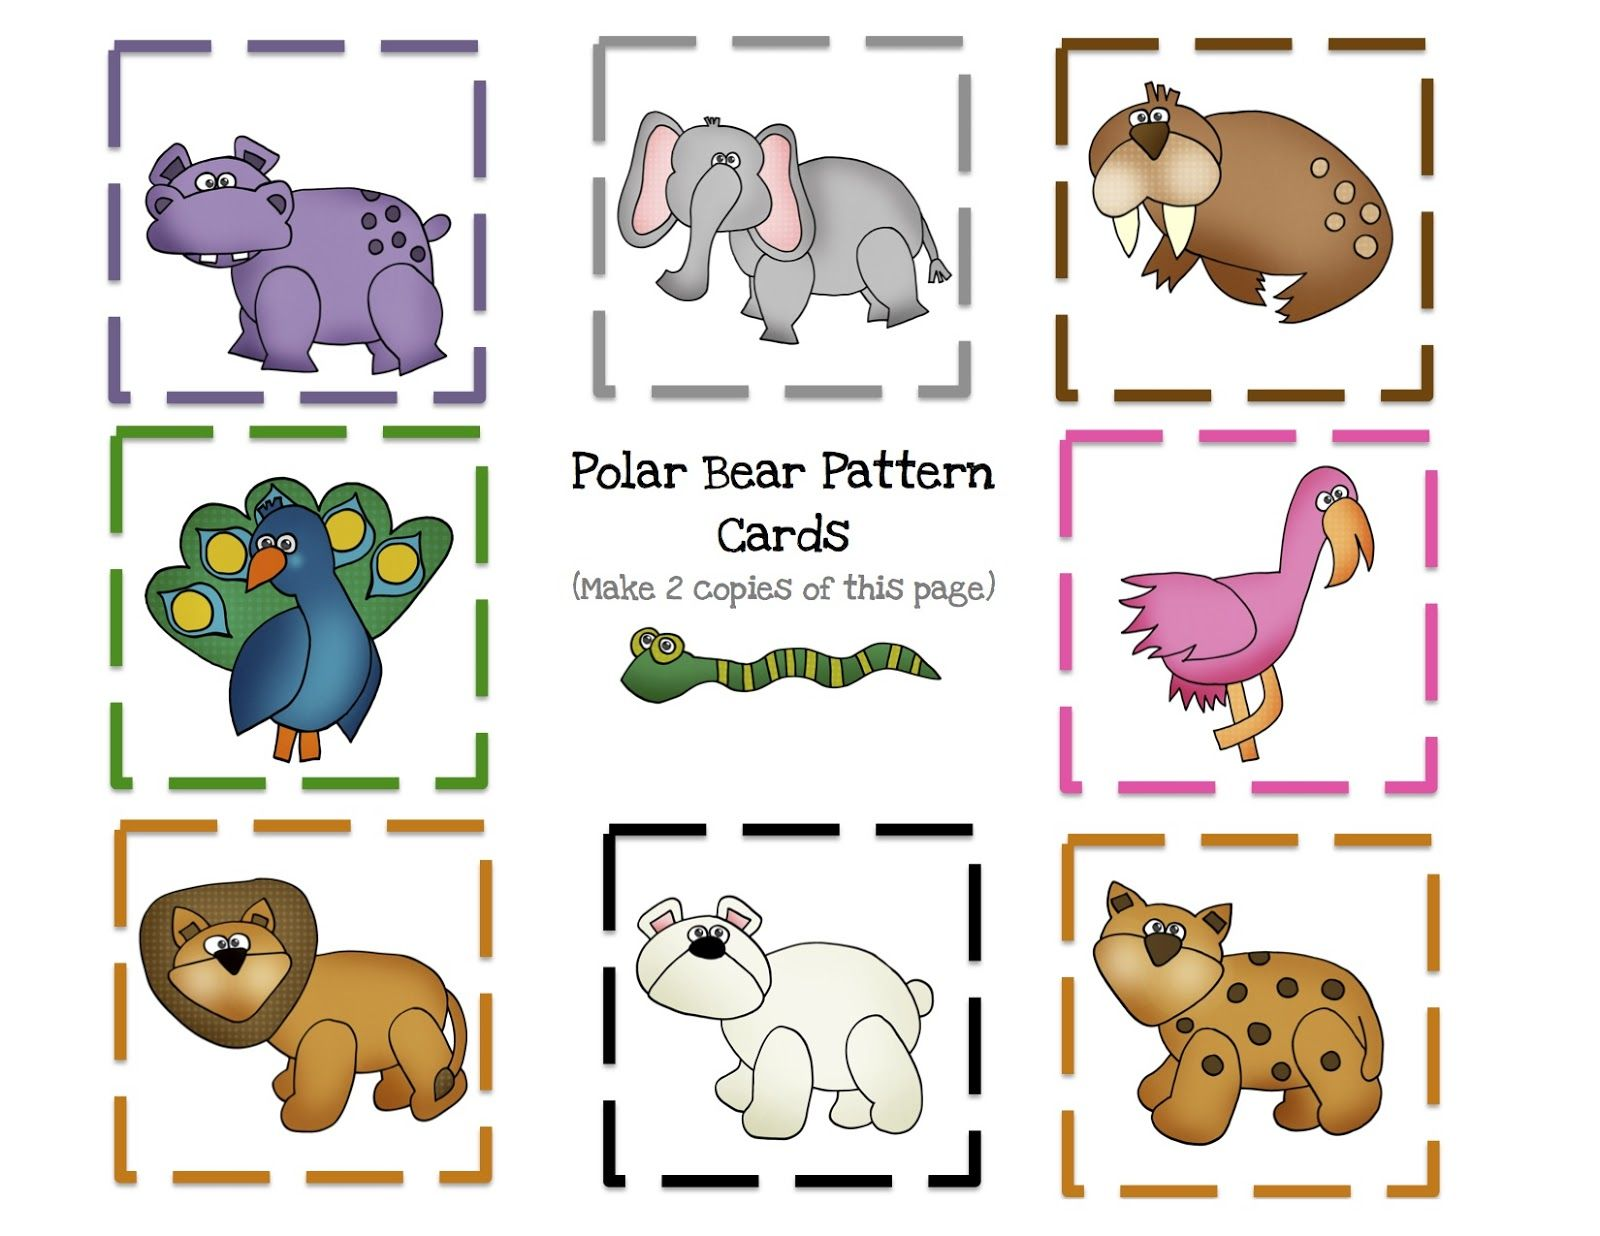 Sequencing What Do You Bear Hear Polar Polar Cards Bear